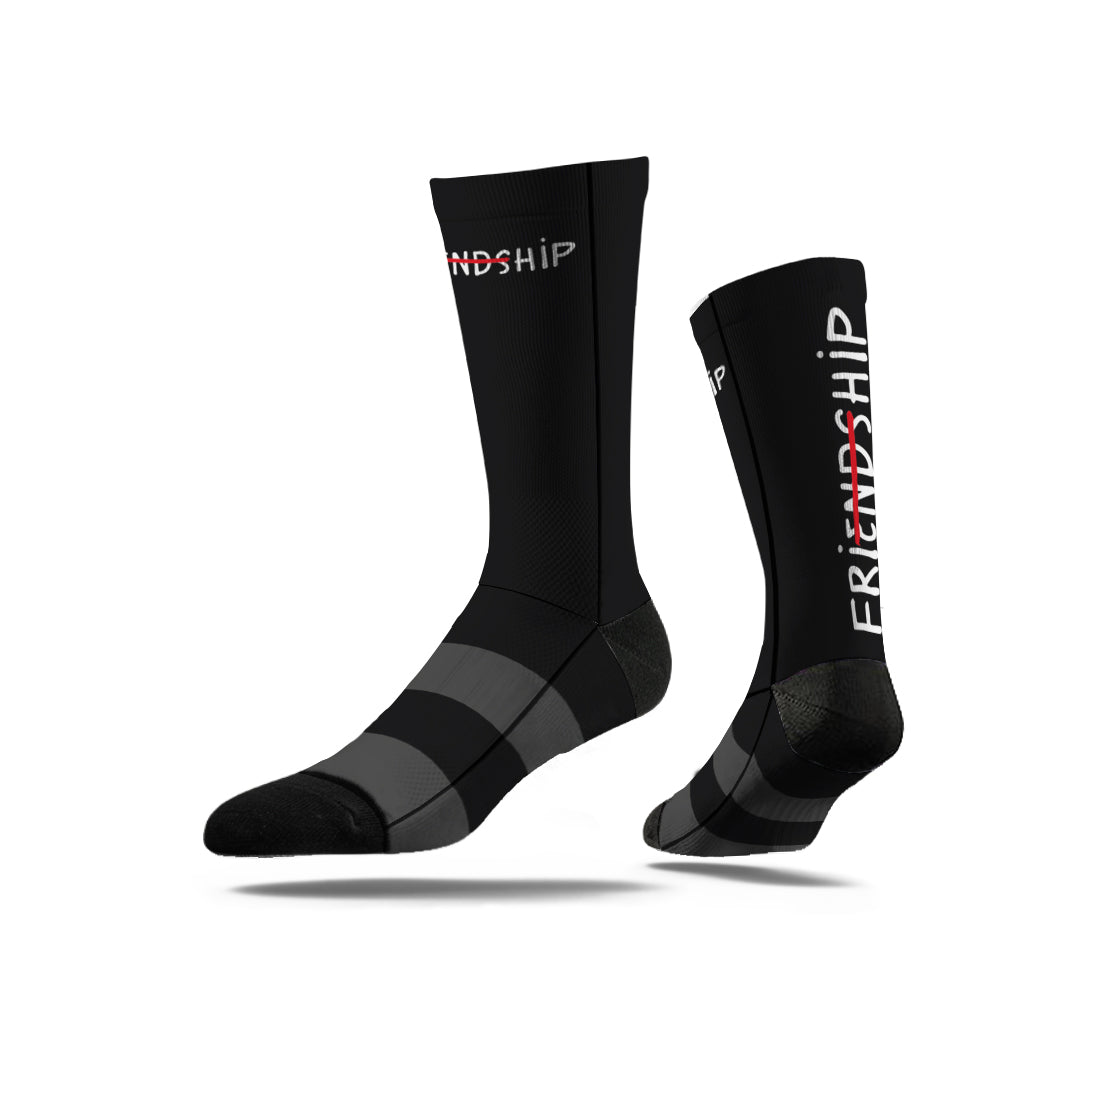 Friendship Sock (Black)